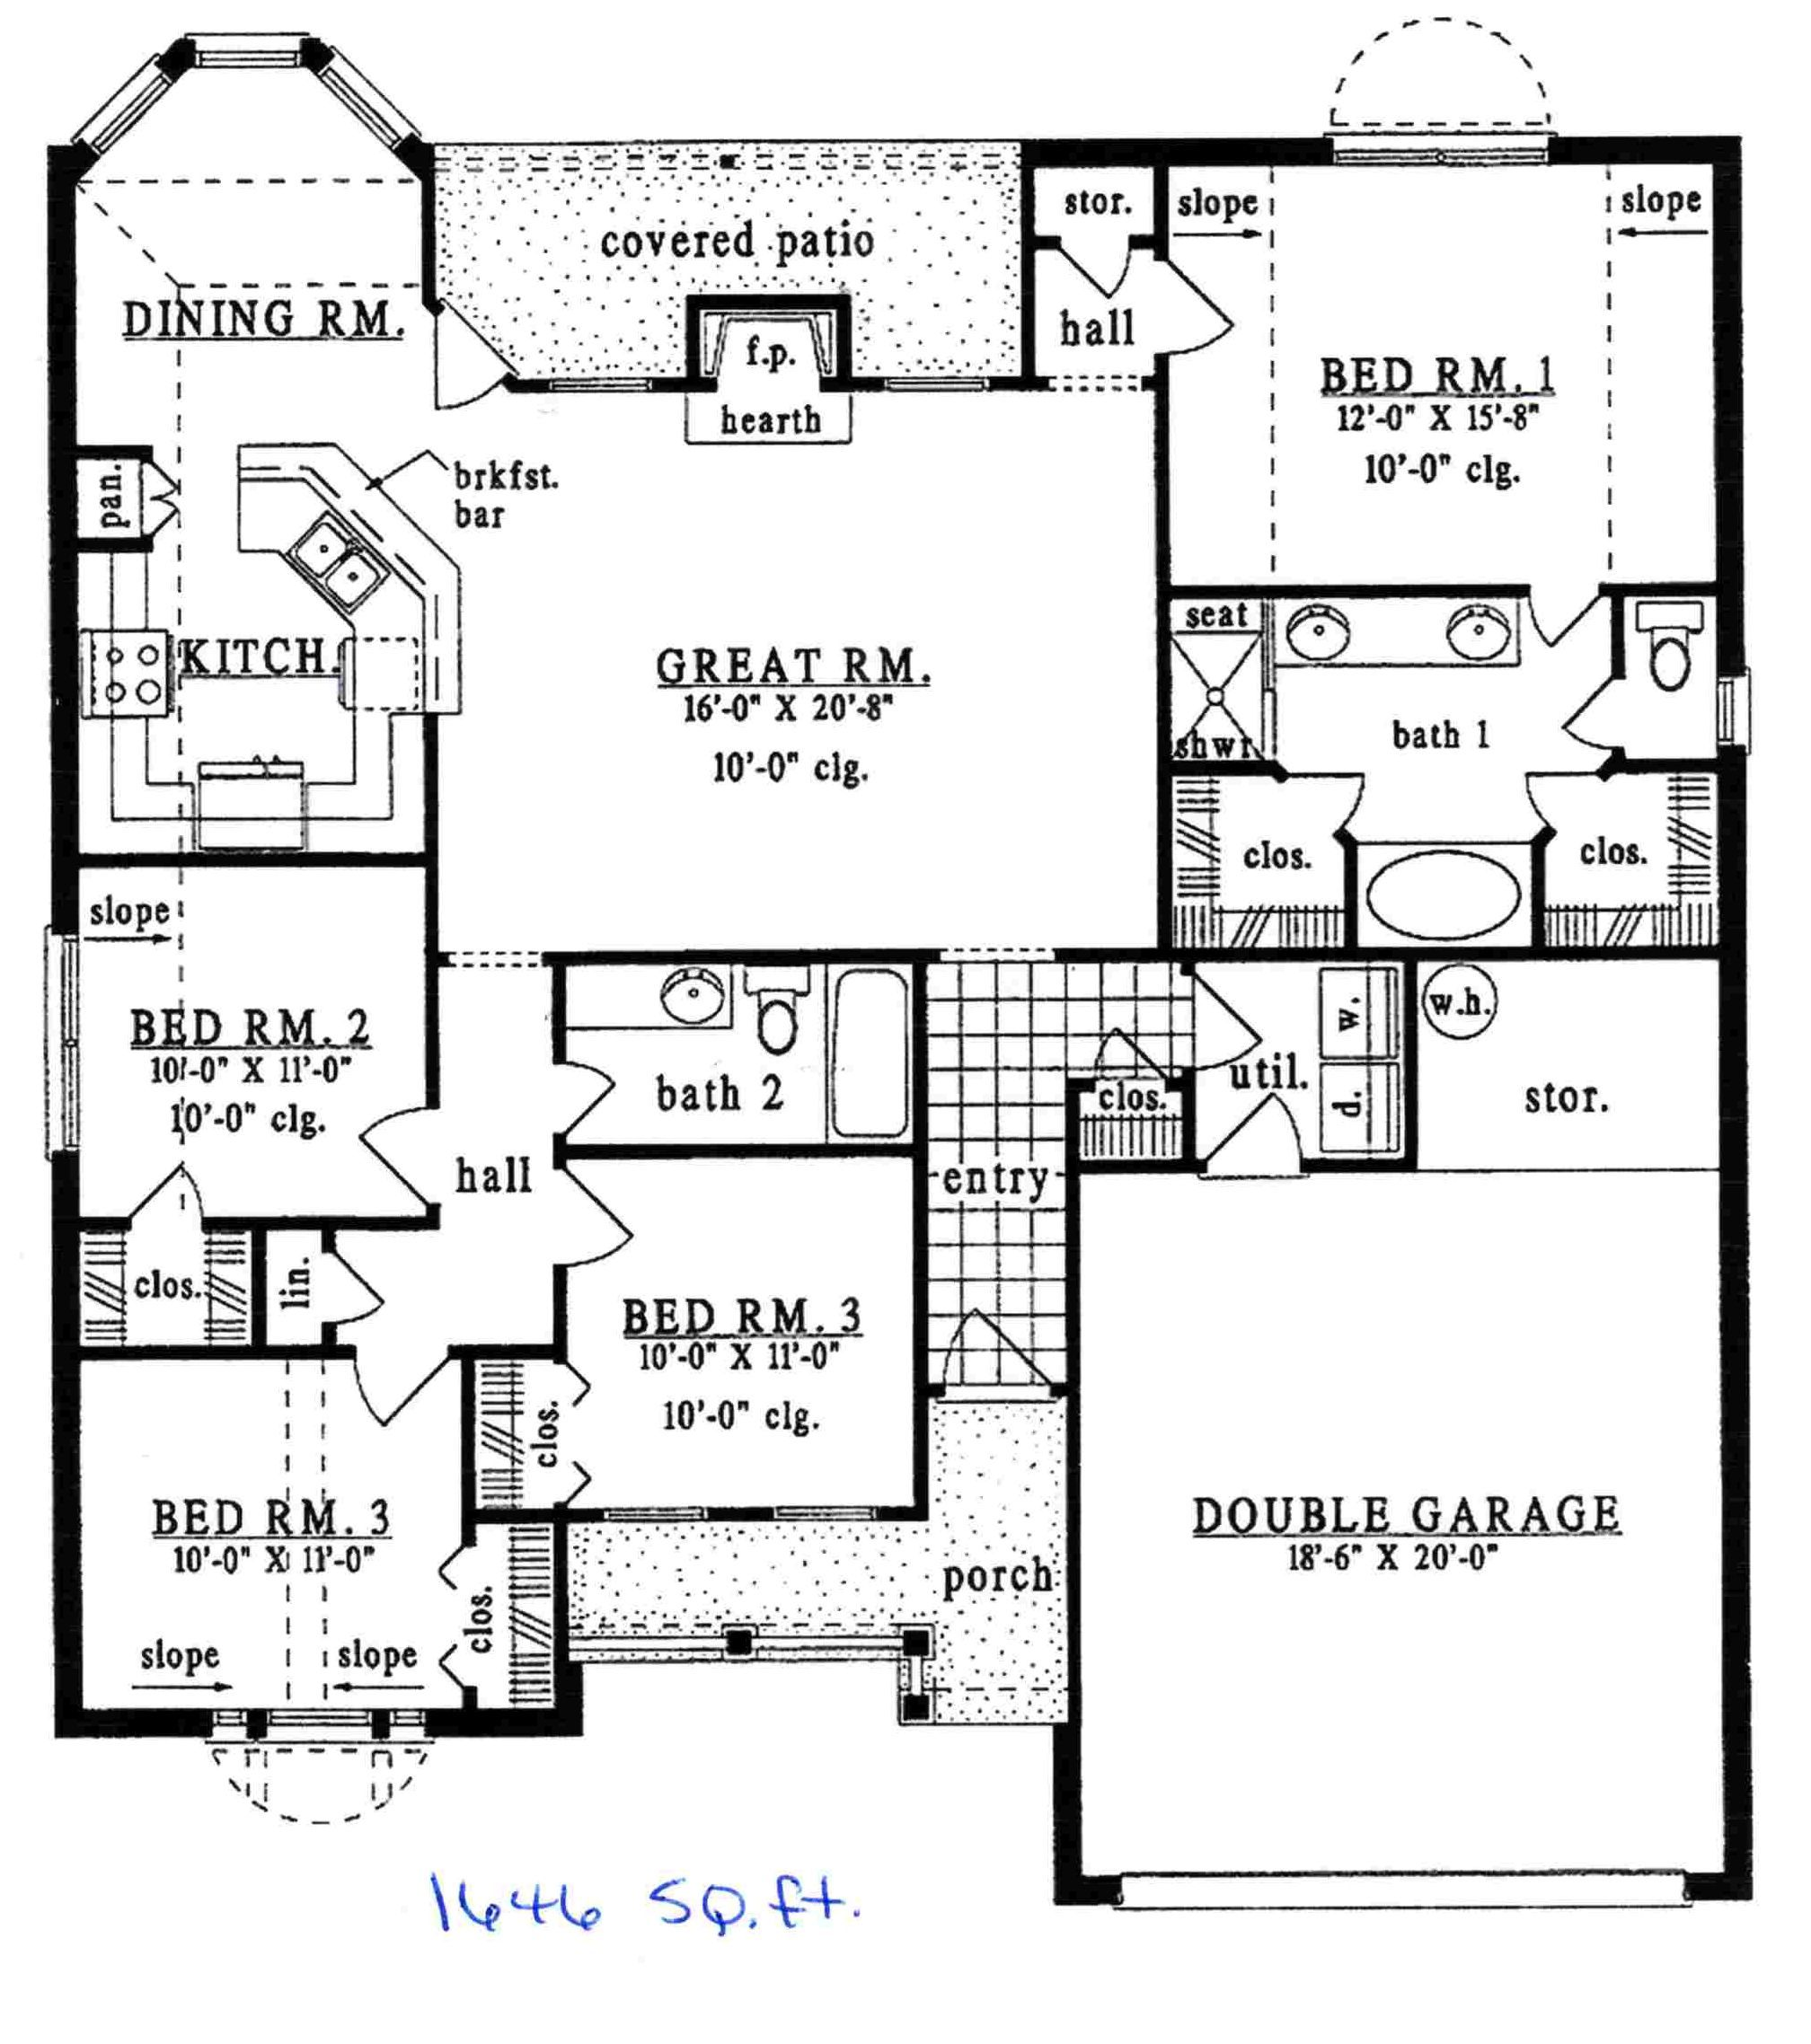 Ranch Style House Plan - 4 Beds 2 Baths 1646 Sq/Ft Plan #42 ... on 30 x 40 sq ft. house plan, 1800 sq ft ranch home plan, 1600 sq ft ranch home plan, hawaii cottage floor plan,